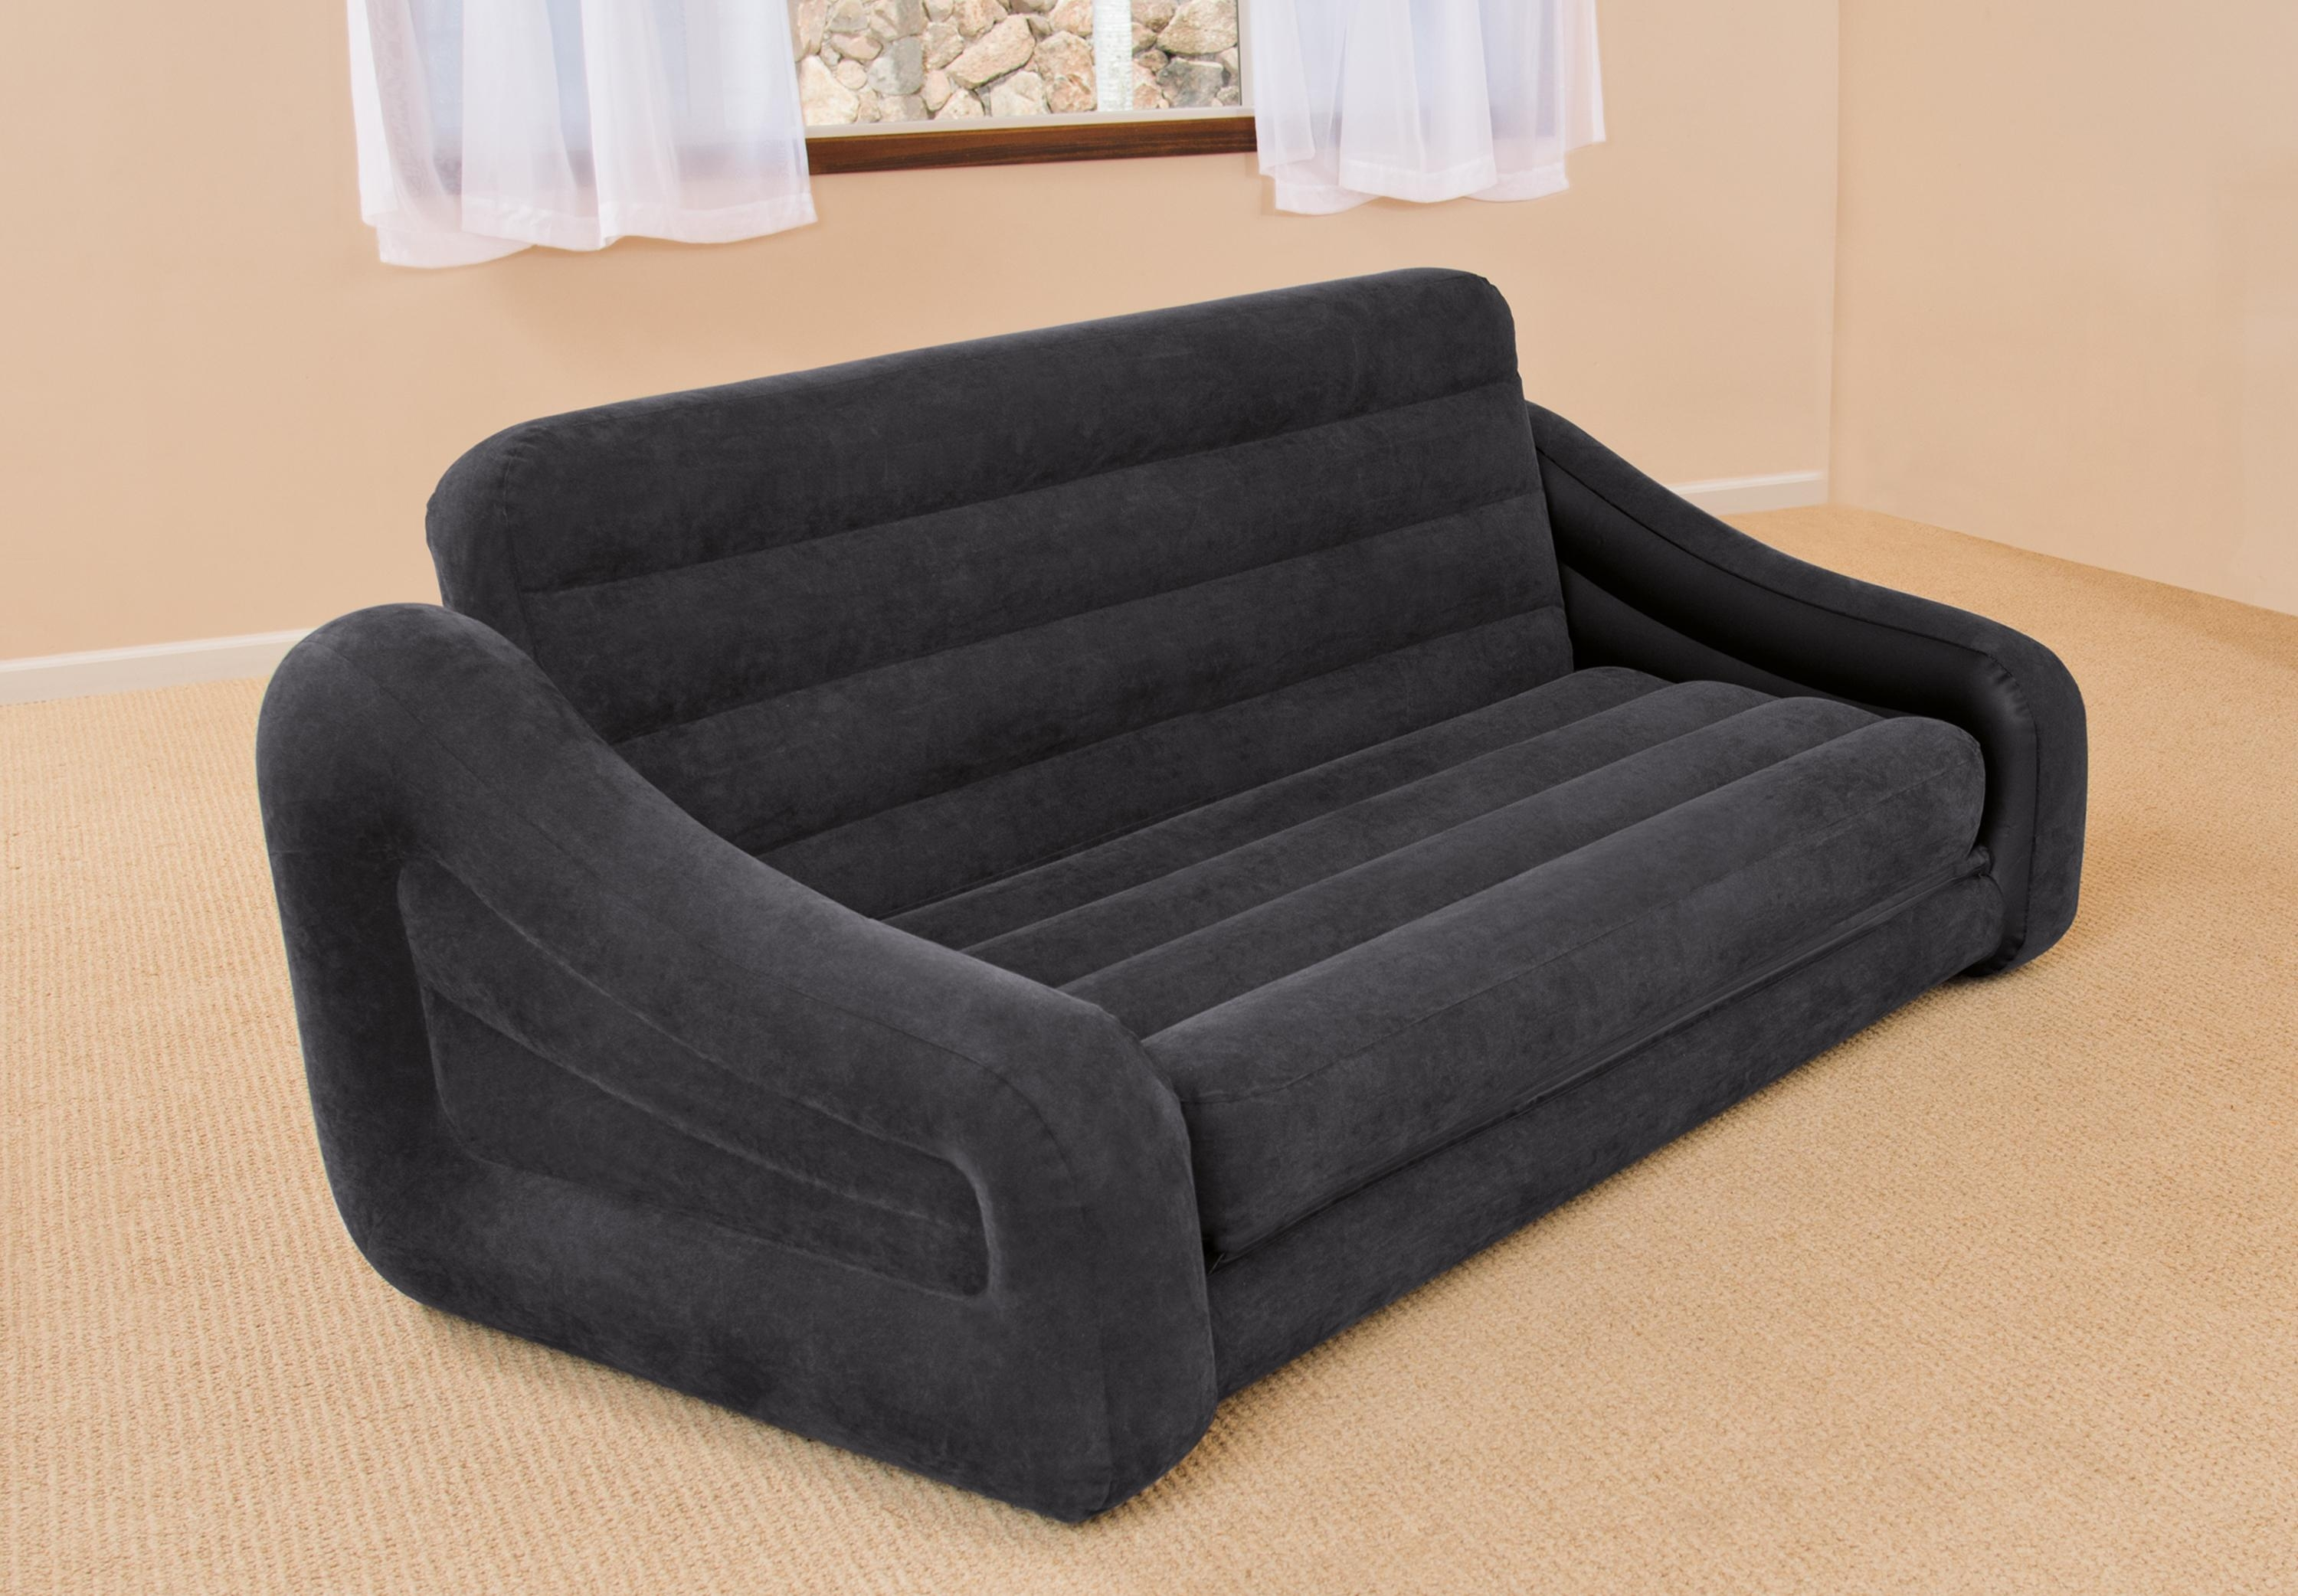 Sofas Center : Carlyle Sofa Beds Carlisle Gray For Carlyle Sofa Beds (View 6 of 20)